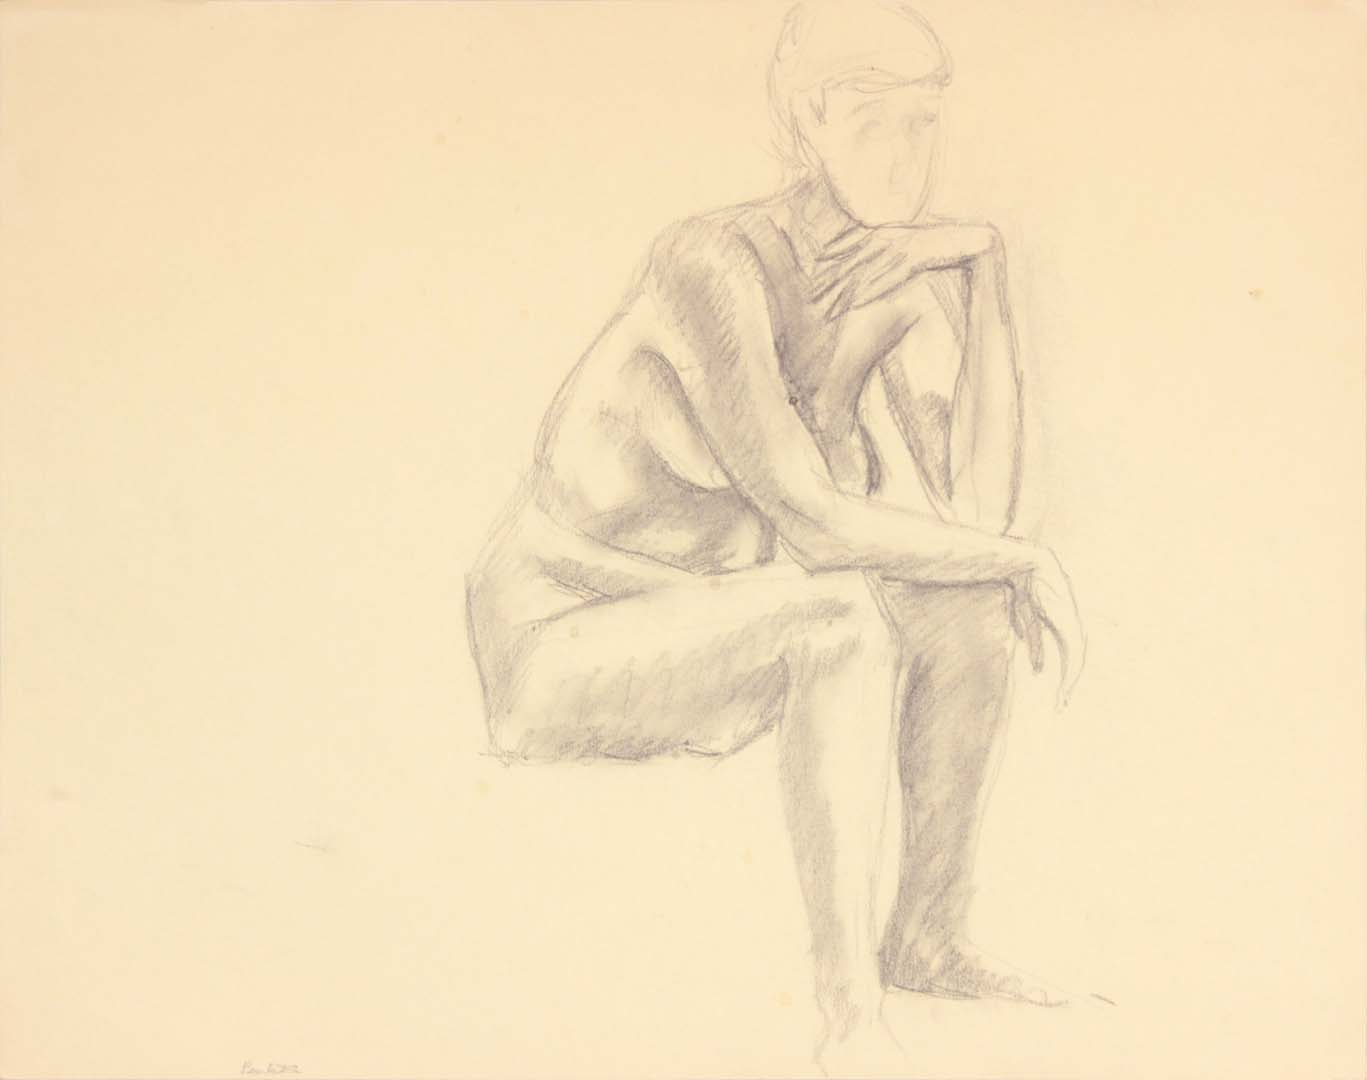 Seated Female Leaning Forward Graphite 19 x 24